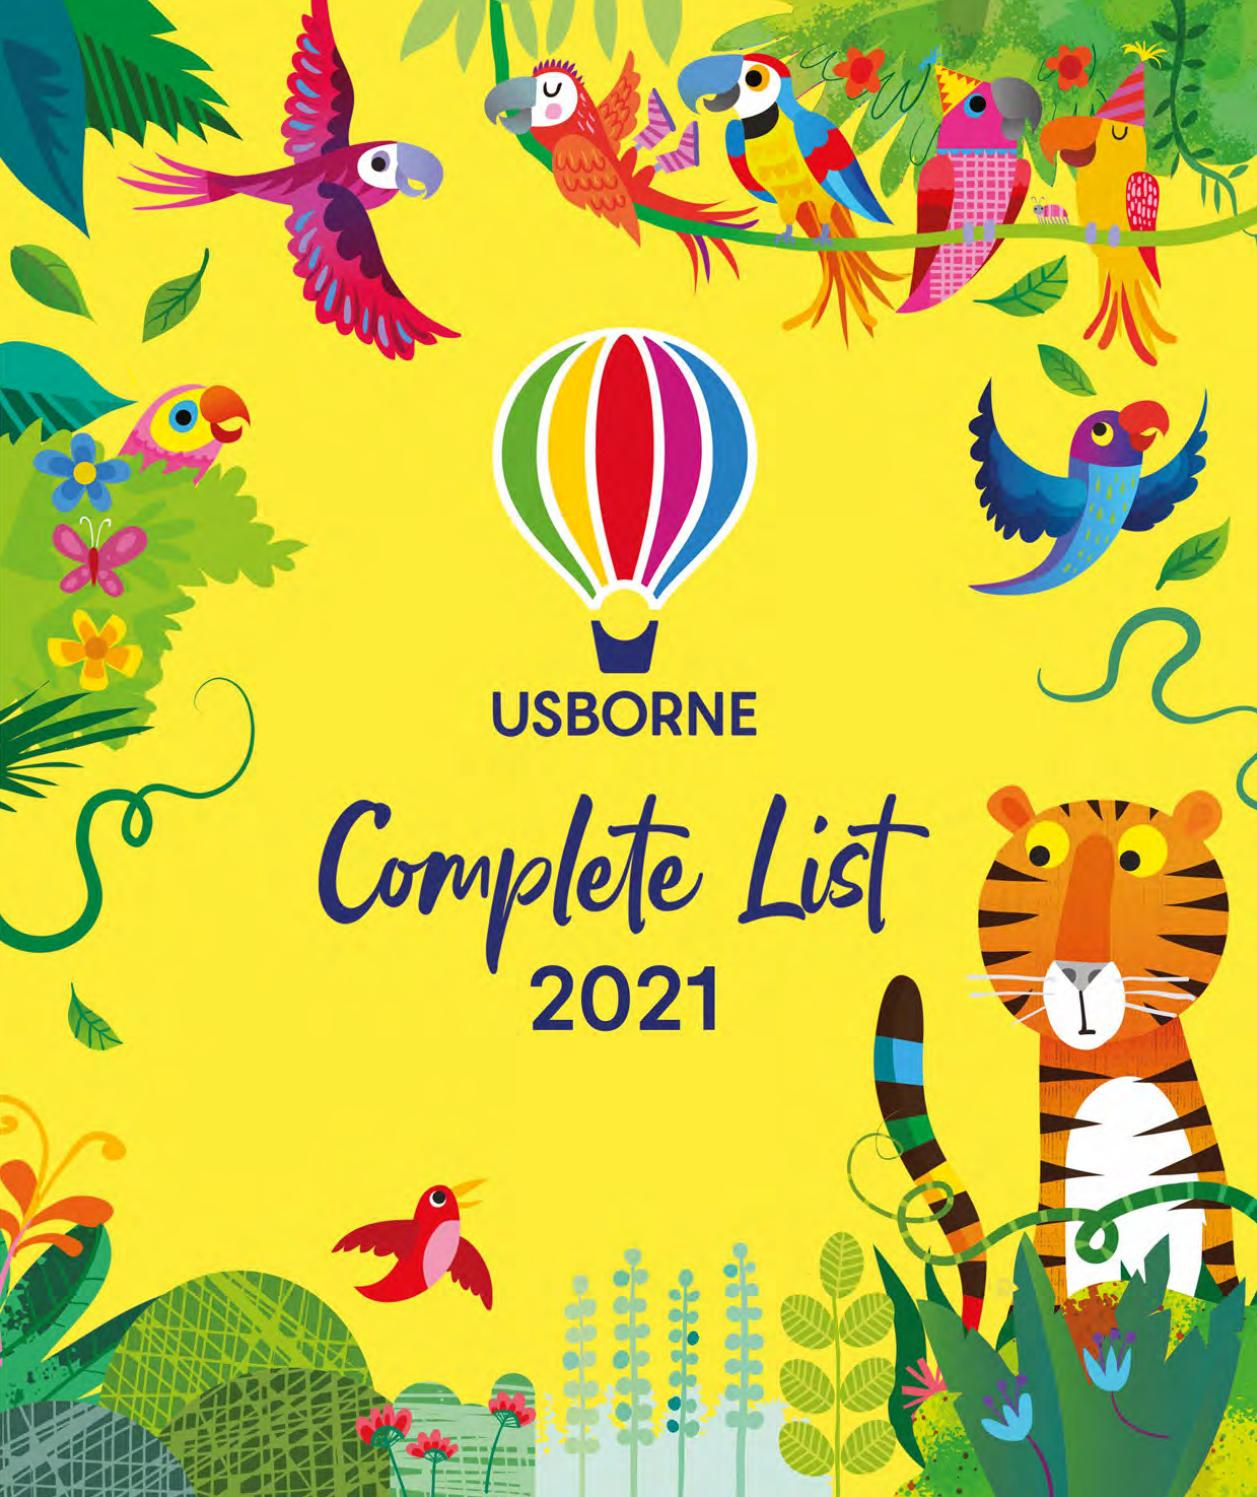 Usborne Complete List 2021 By Usborne Issuu